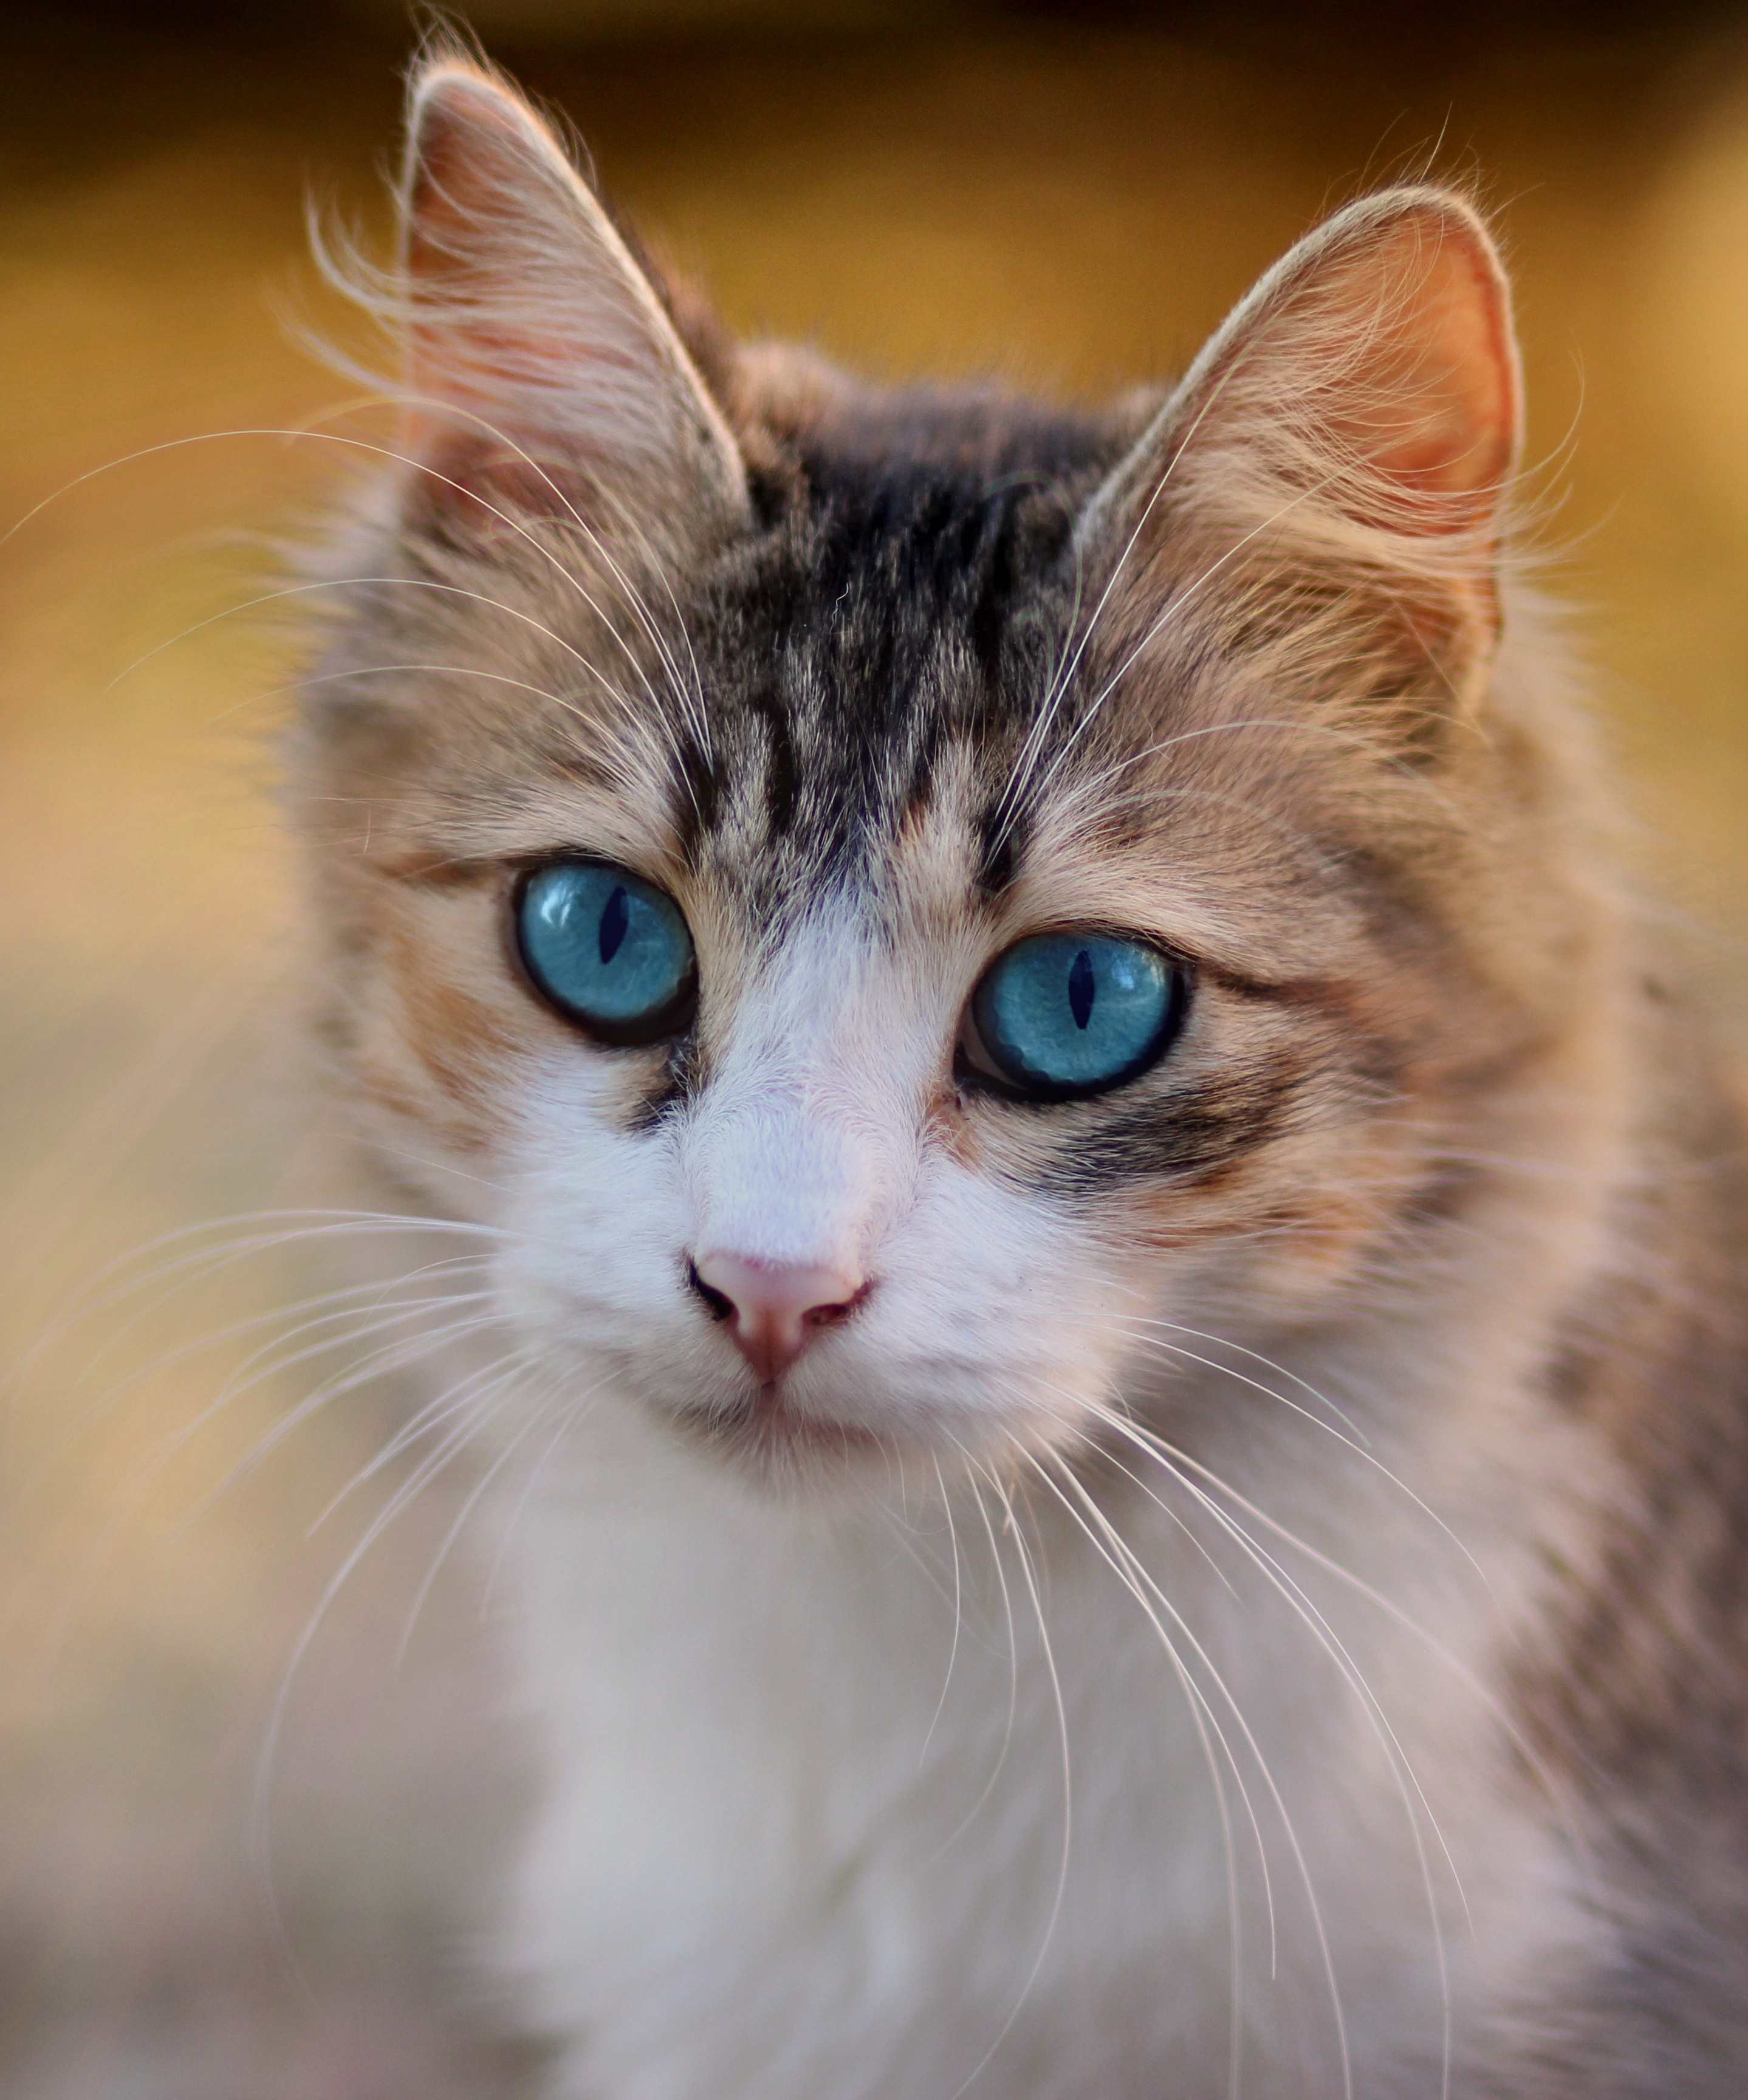 FileTabby cat with blue eyes,3336579 , Wikipedia